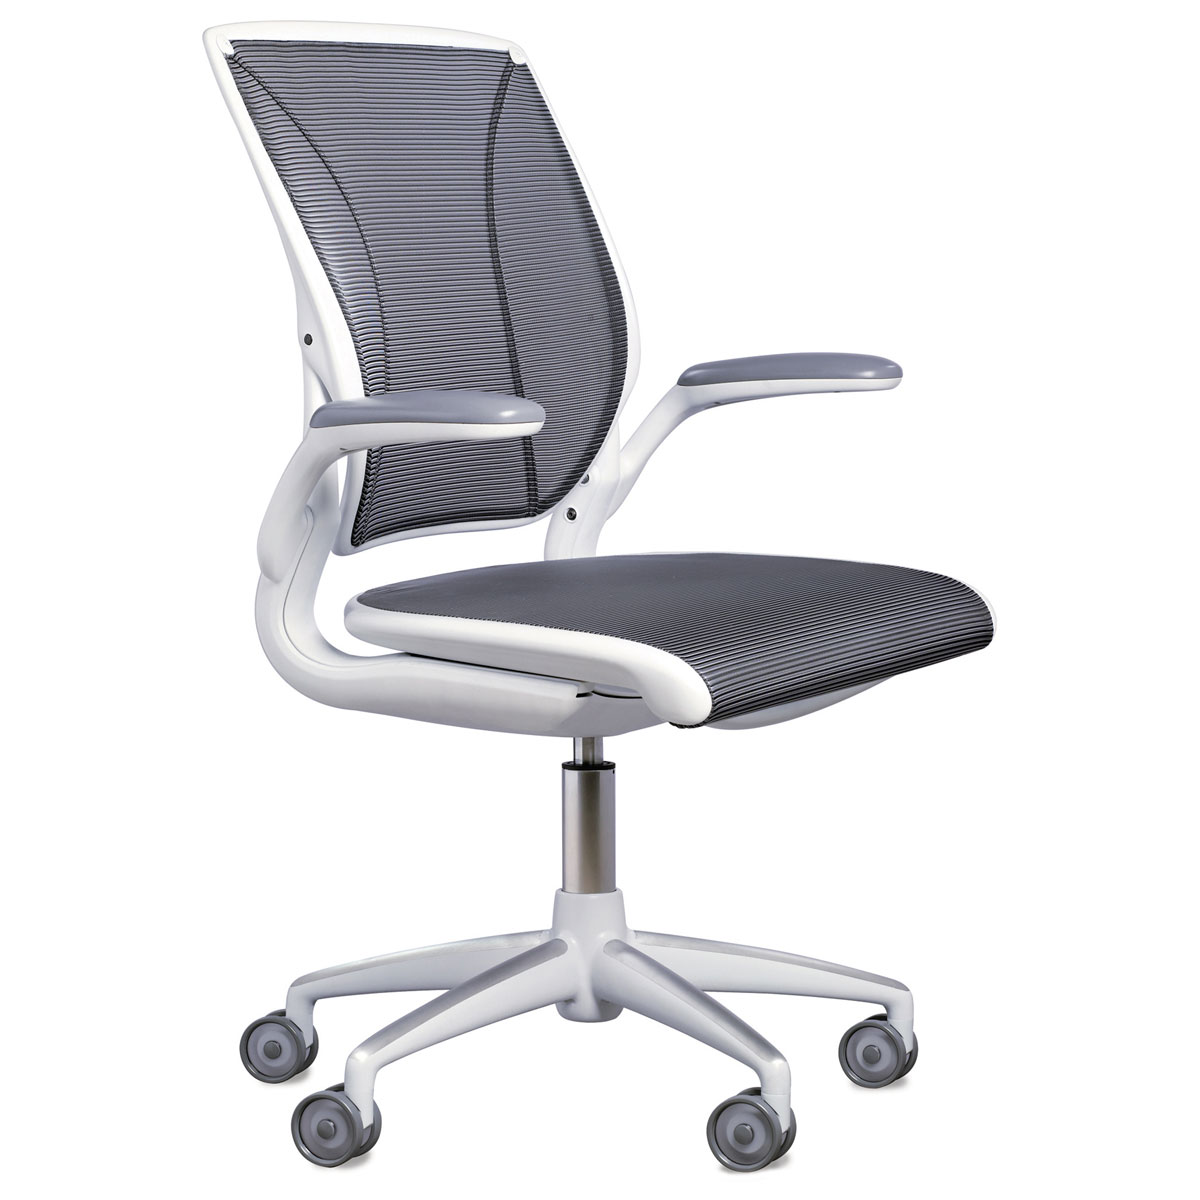 Humanscale Diffrient World Chair Humanscale Diffrient World Full Mesh Task Chair